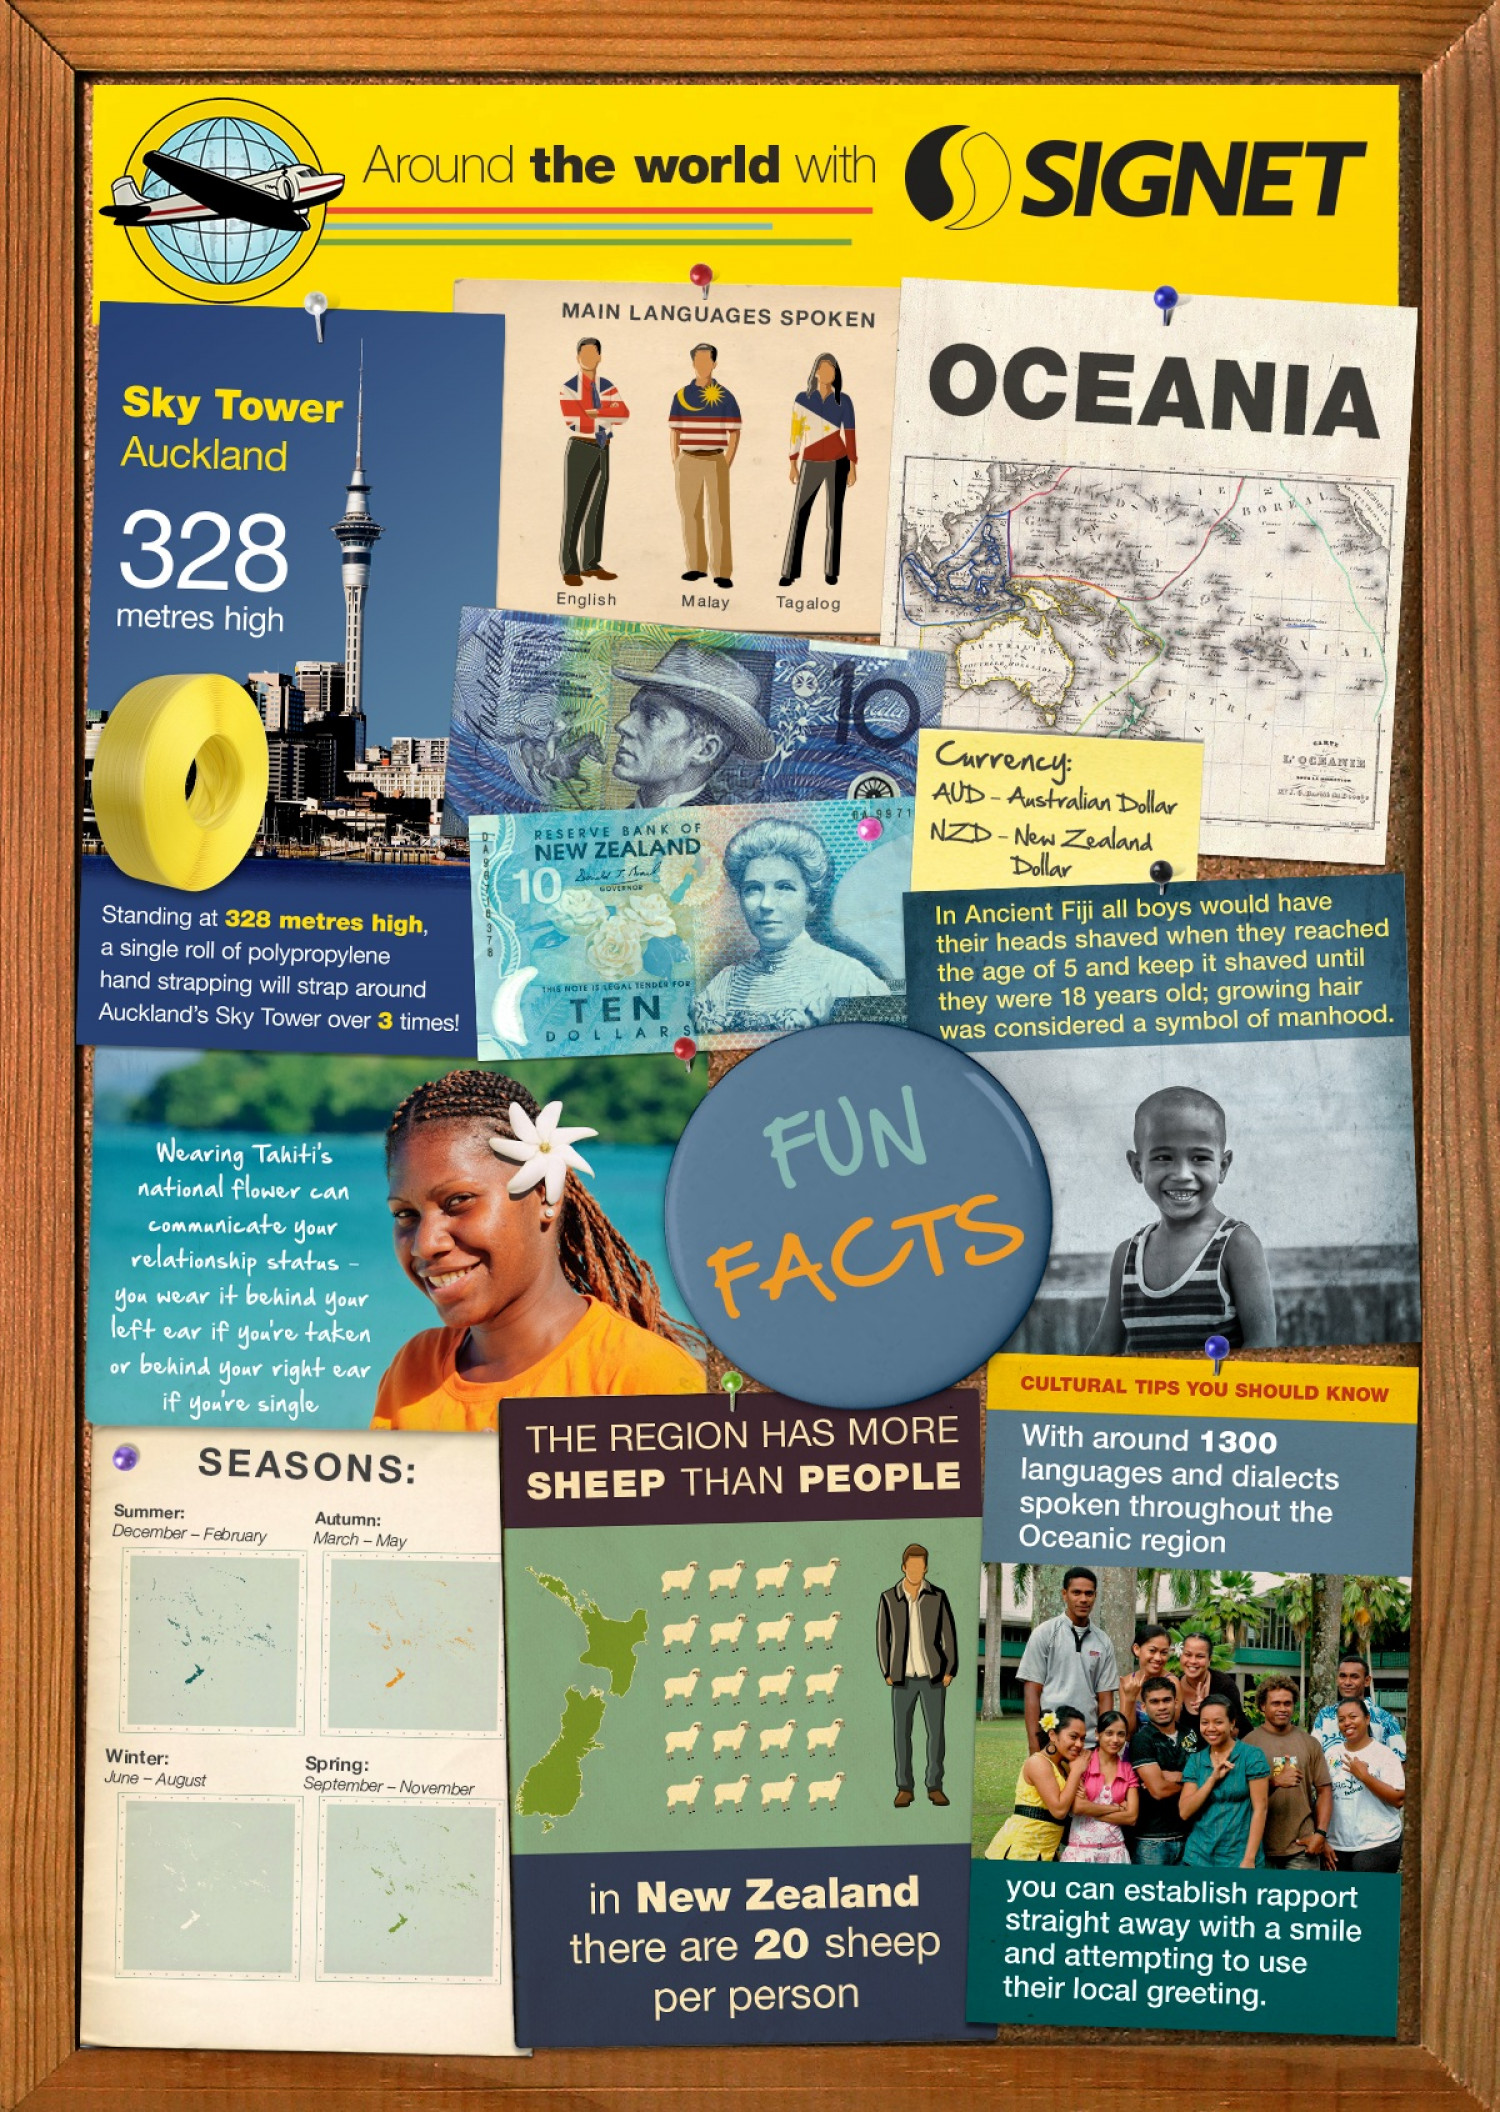 Oceania Fun Facts Infographic